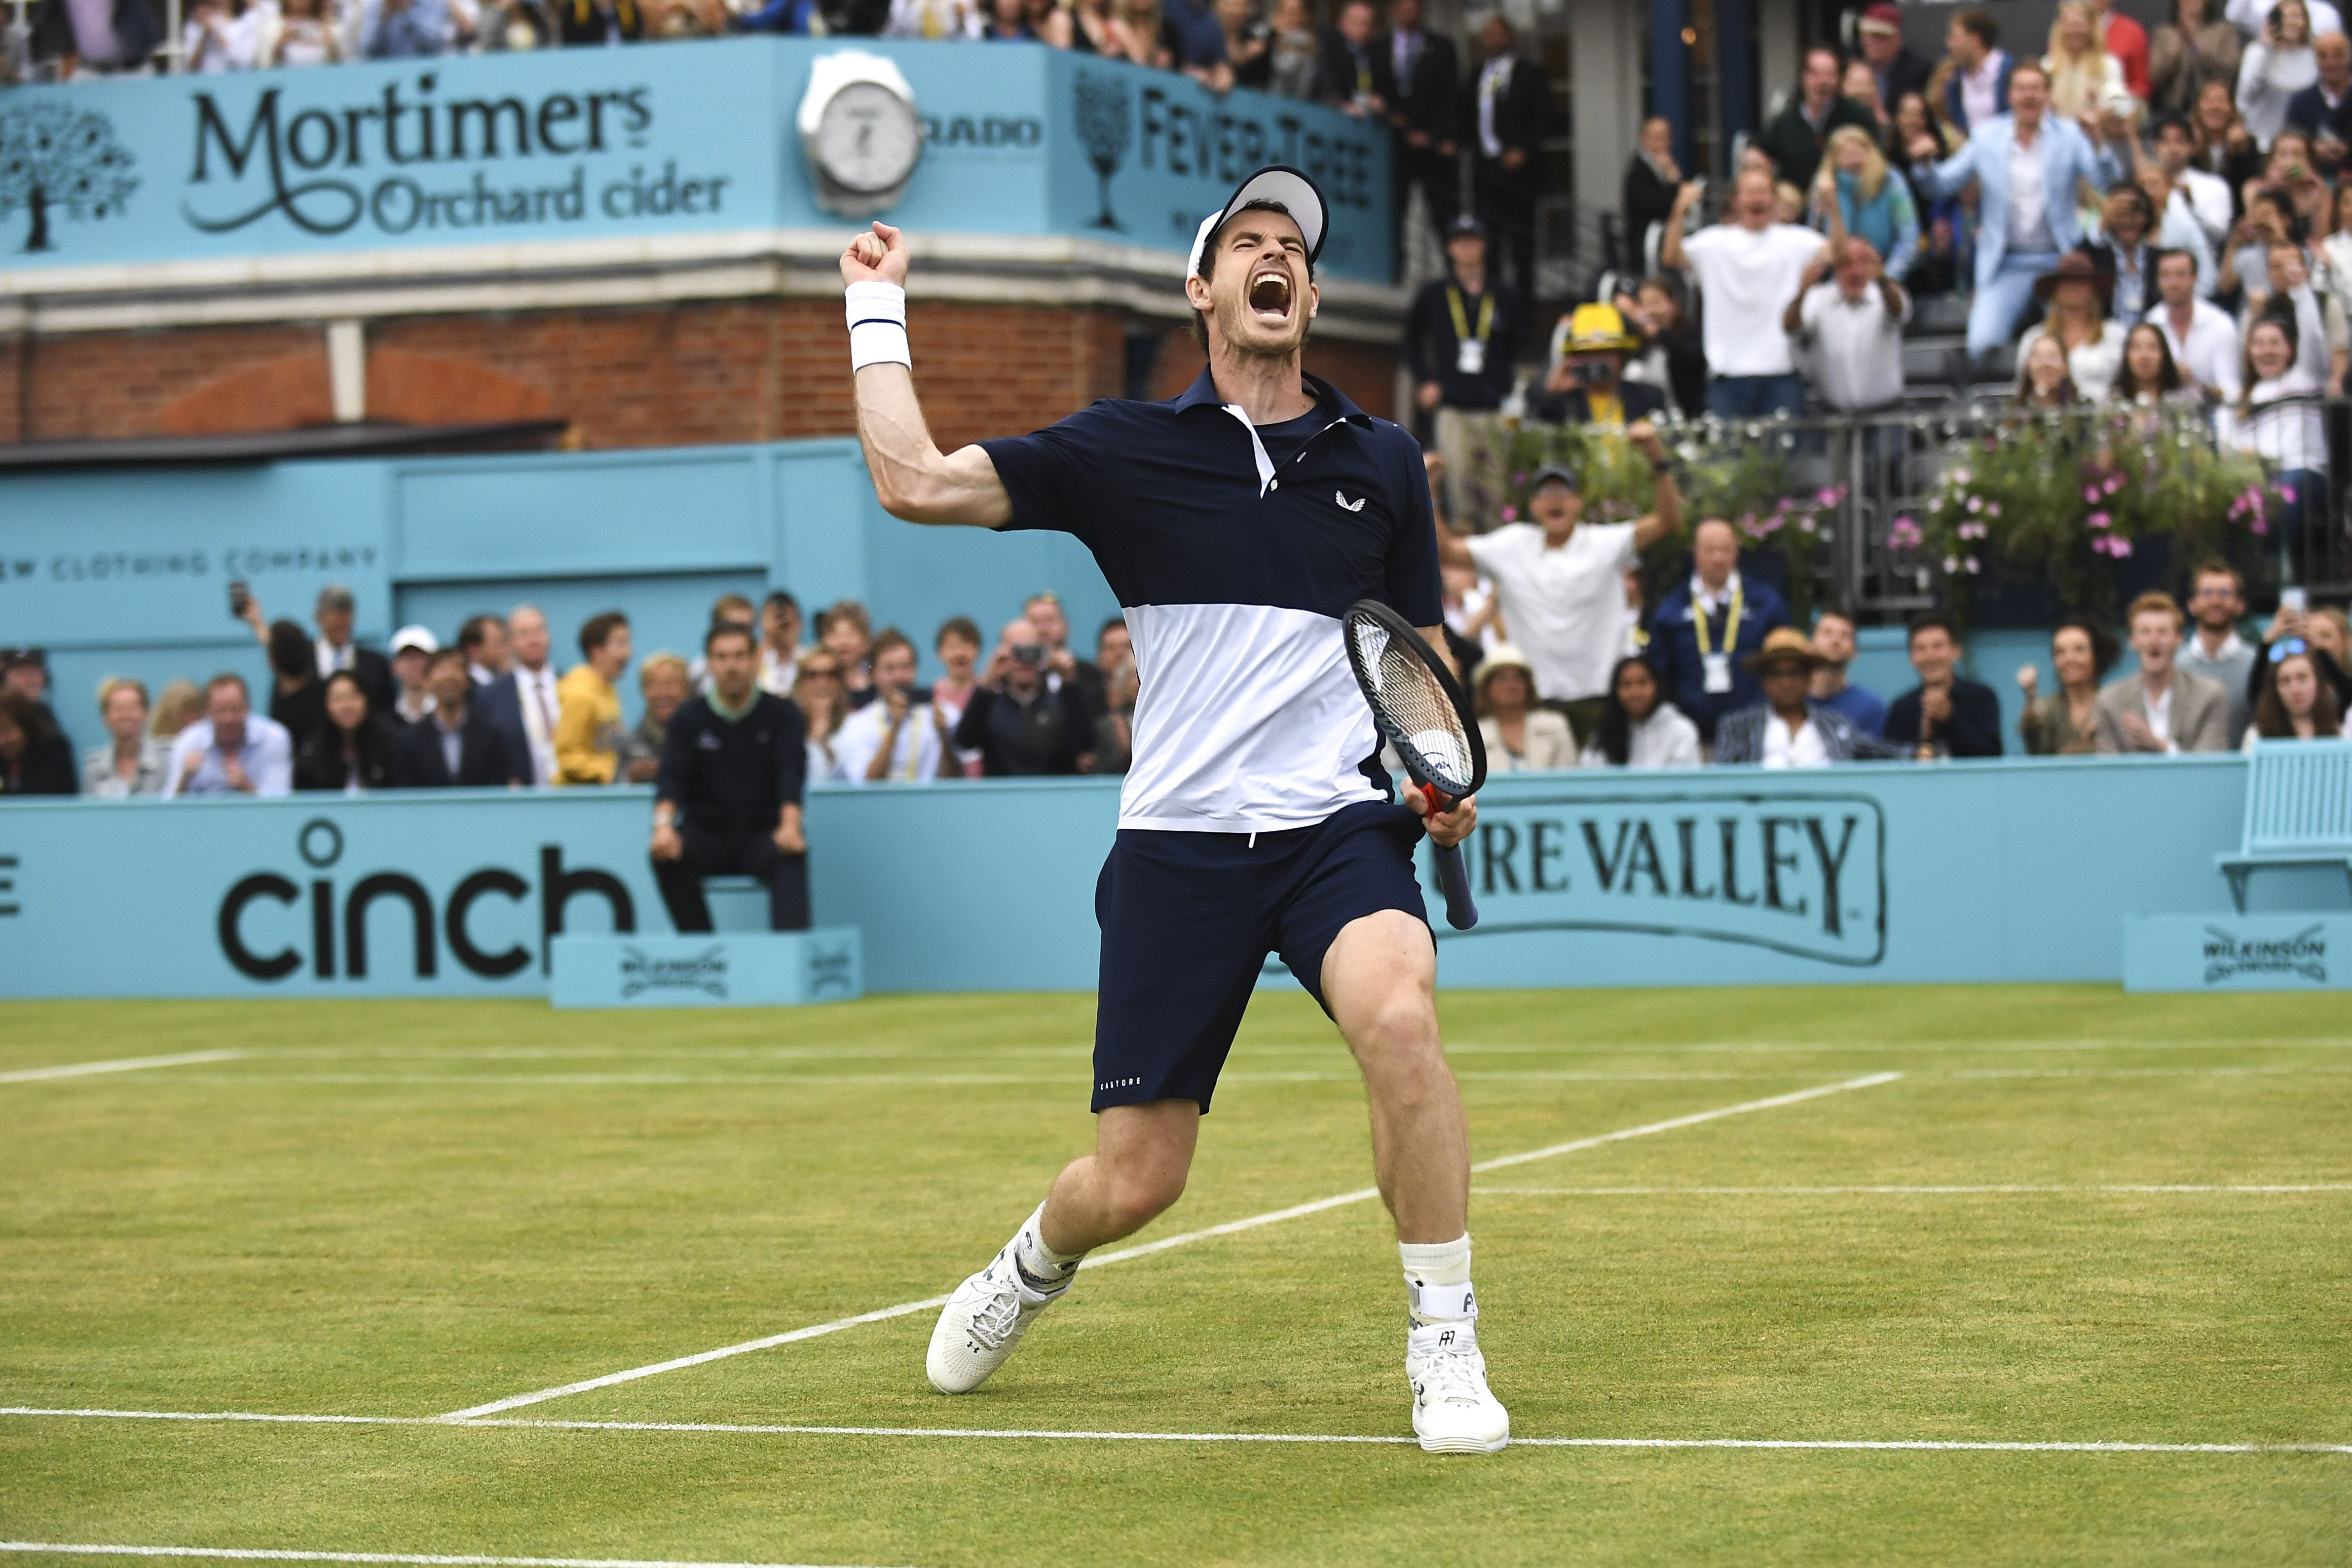 Andy Murray celebrating